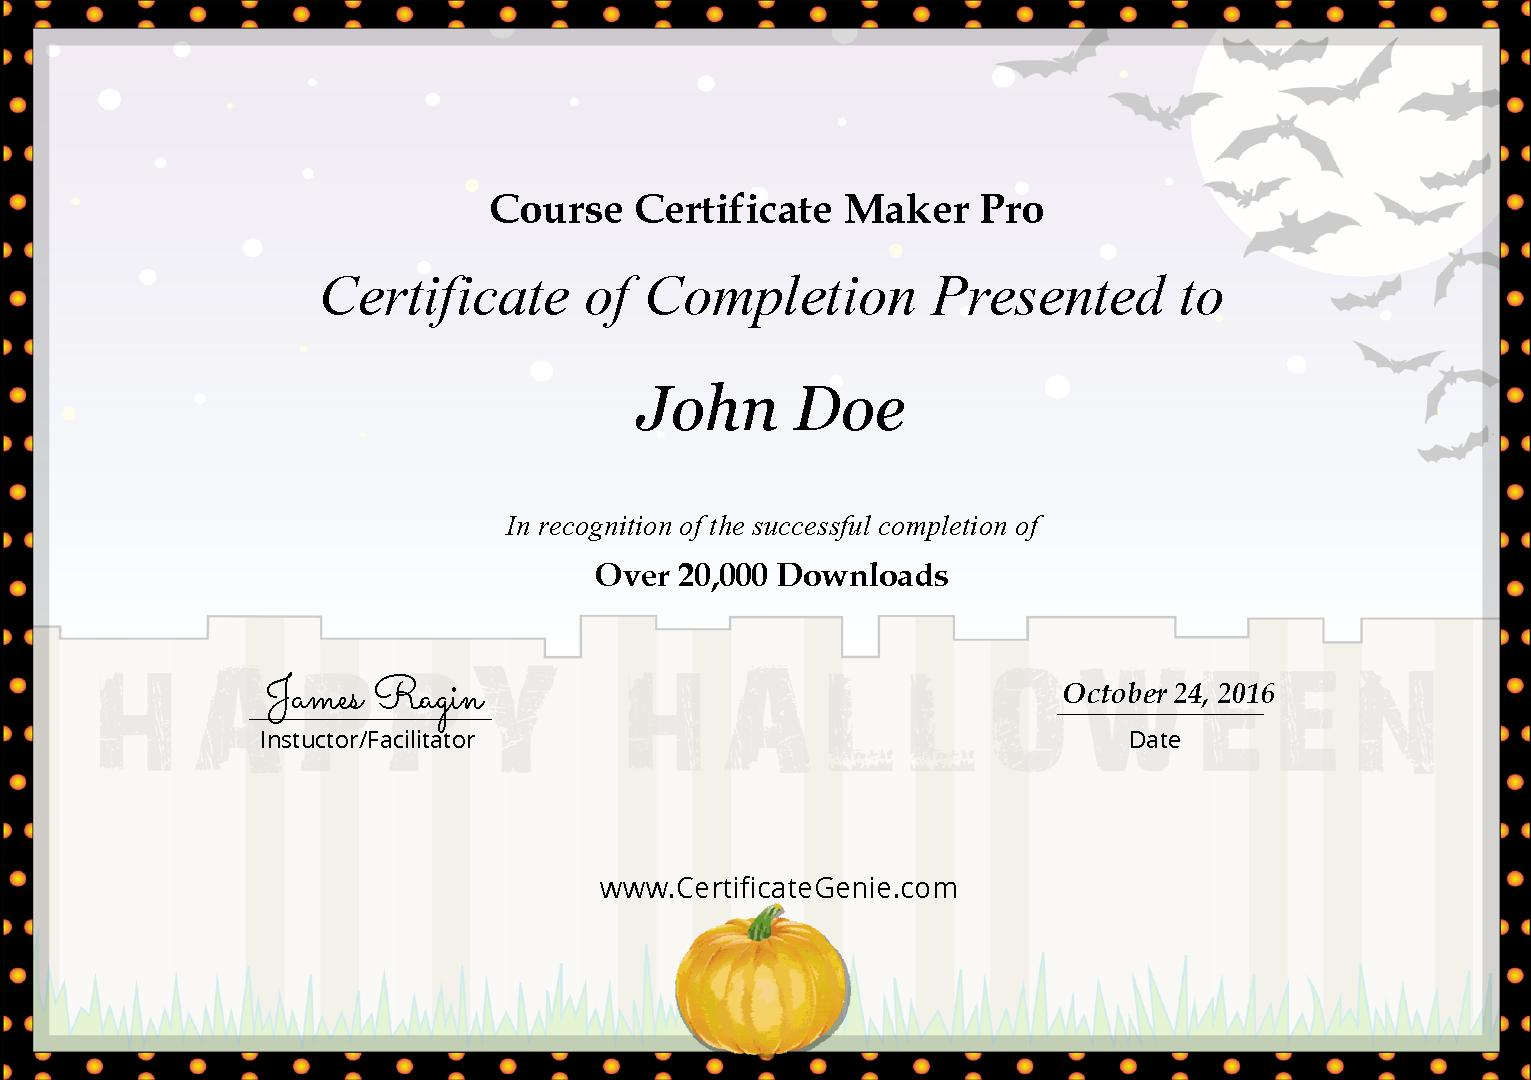 Course Certificate Maker Pro for Android - APK Download